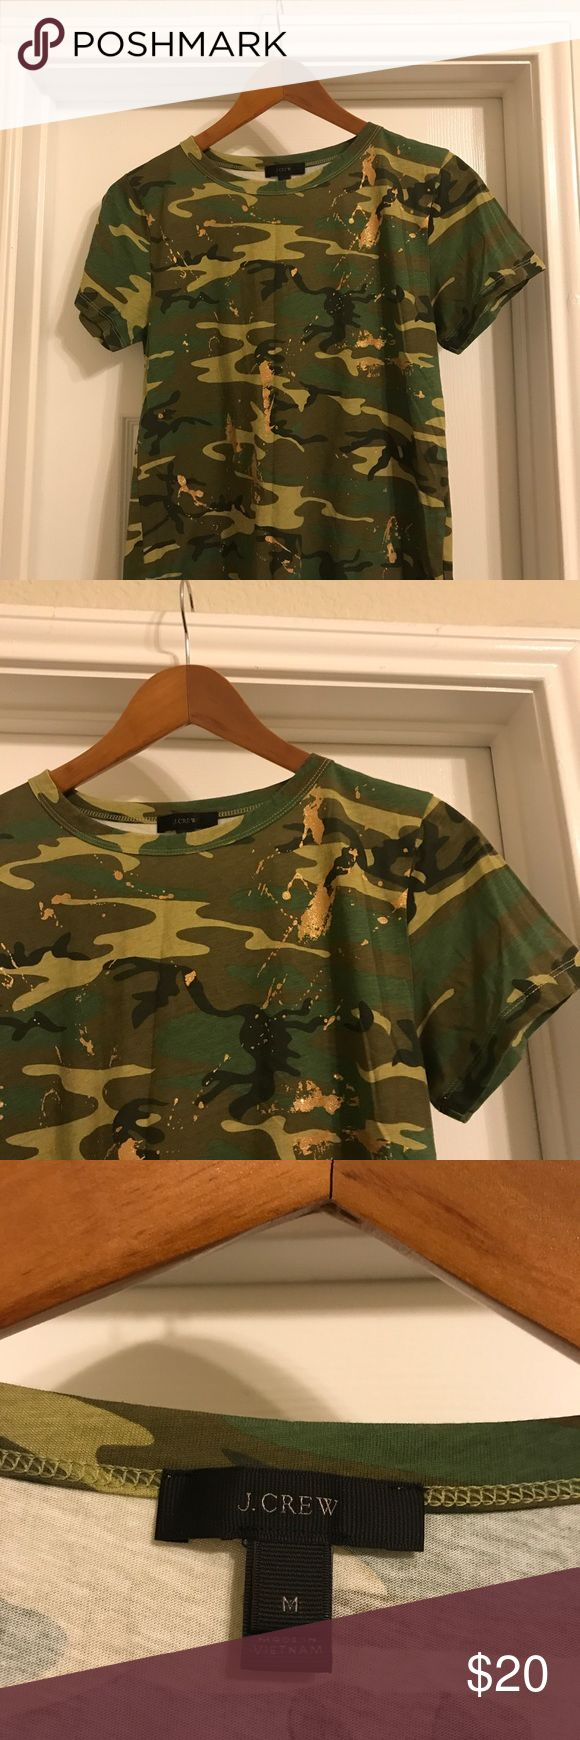 JCrew camo t-shirt JCew camo t-shirt! Cute gold splatter throughout t. Runs a bit small, so M is more similar to a S. Throw a utility jacket over and you are set! JCrew Tops Tees - Short Sleeve